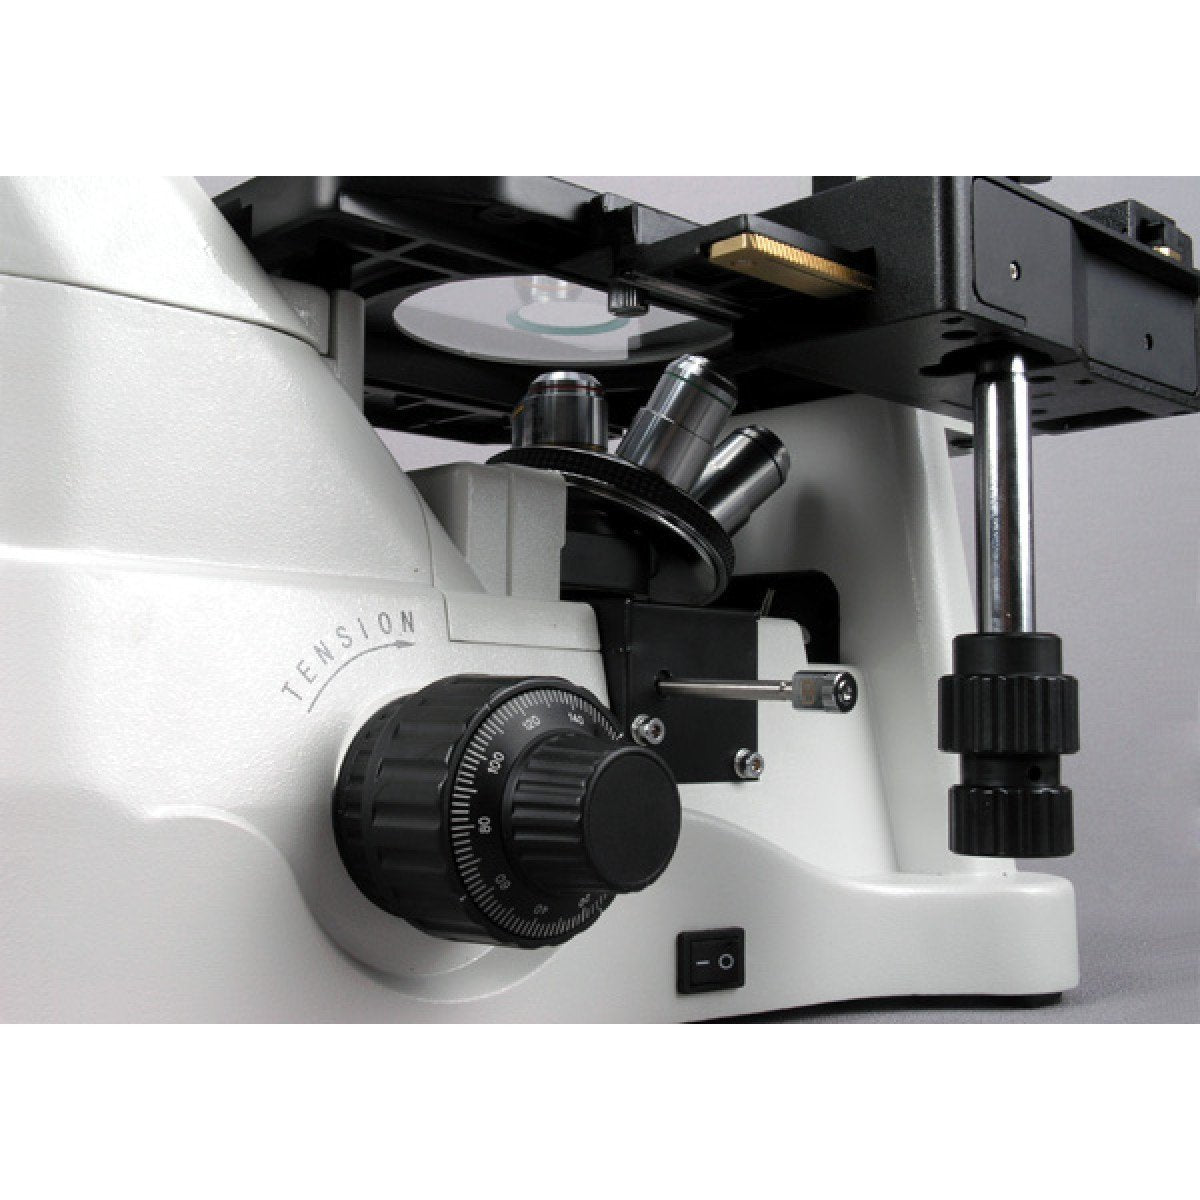 AmScope 1500X Phase Contrast Inverted Fluorescence Microscope + Fluo Camera - IN480TC-FL-MF